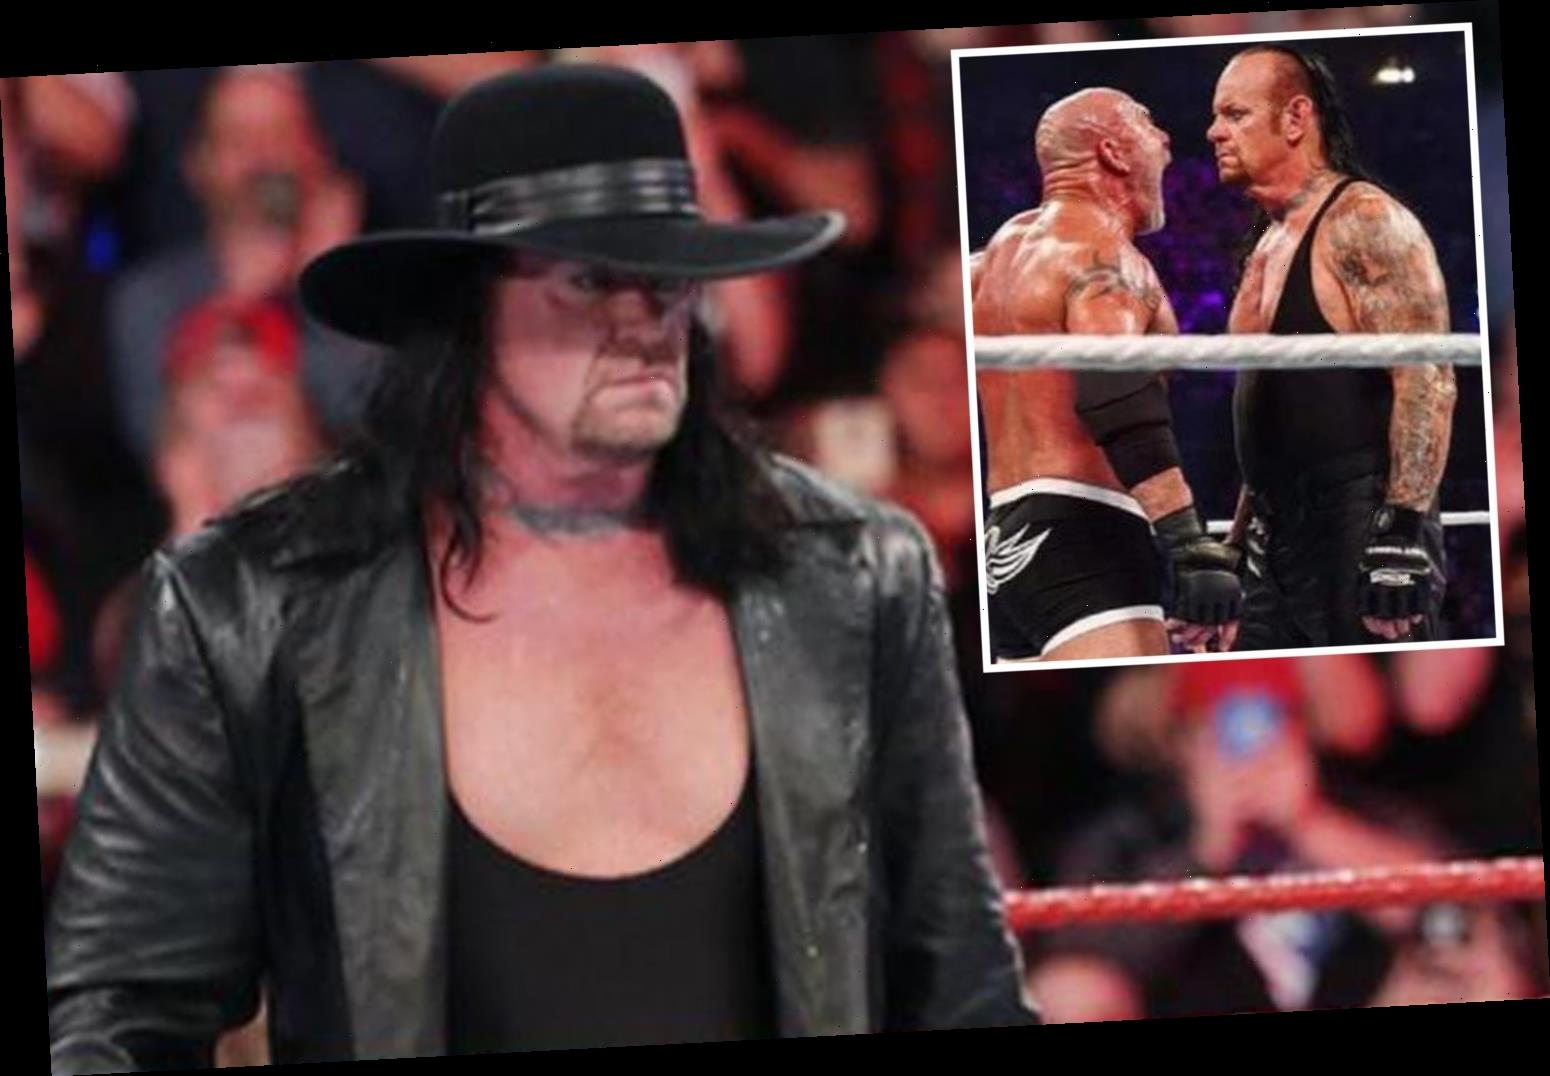 WWE legend The Undertaker reveals 'catastrophic' Super Showdown match vs Goldberg ended badly when rival got concussed – The Sun